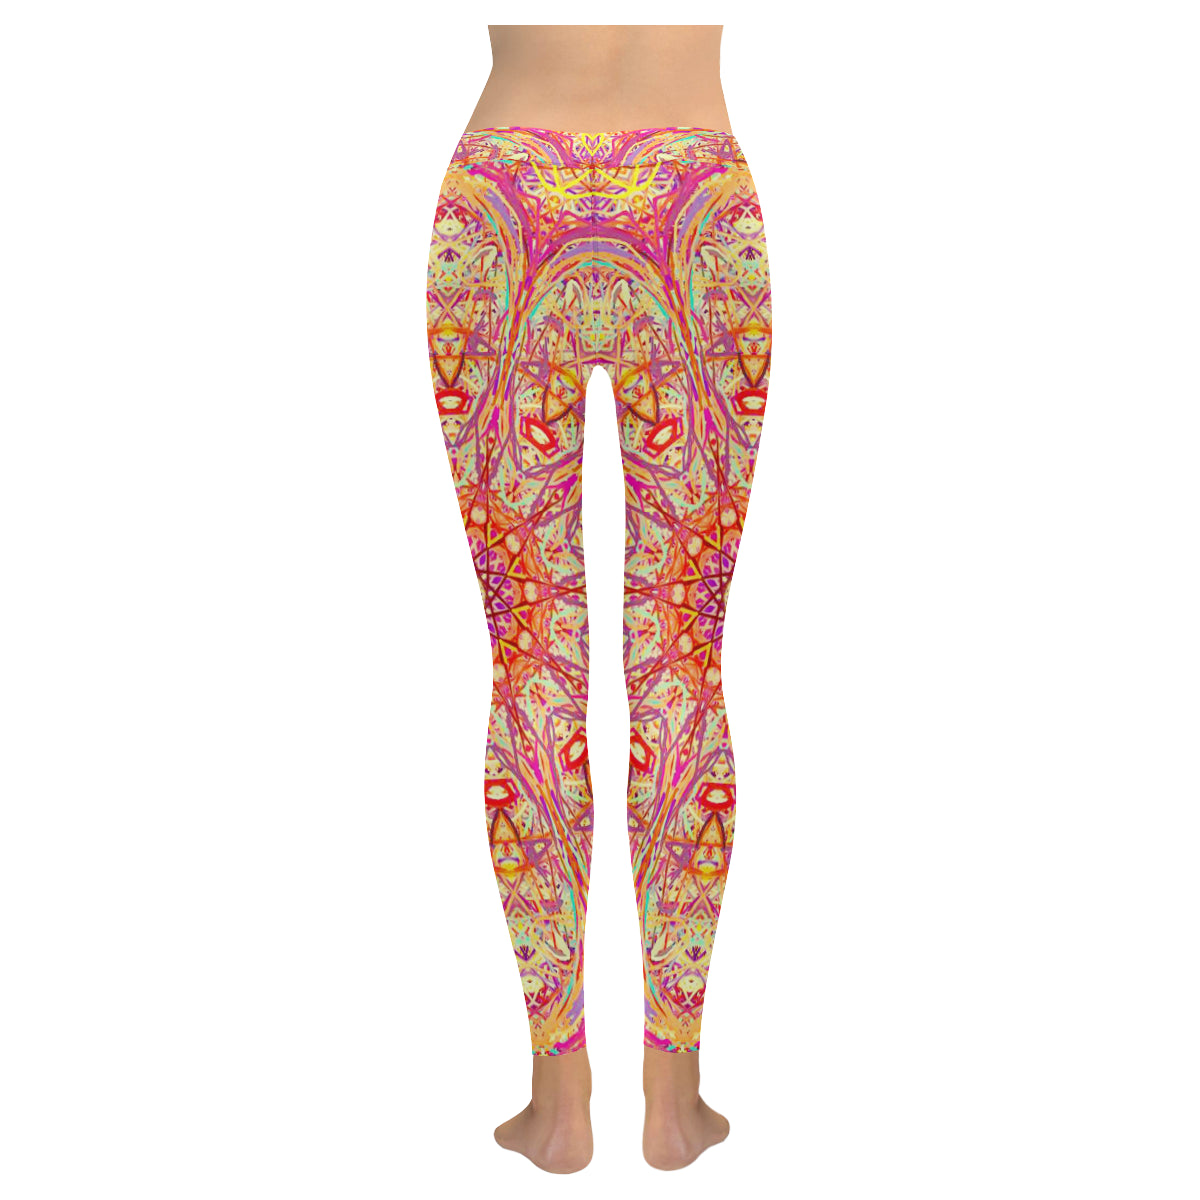 Thleudron Criolla New Low Rise Leggings (Flatlock Stitch) (Model L07) - Thleudron